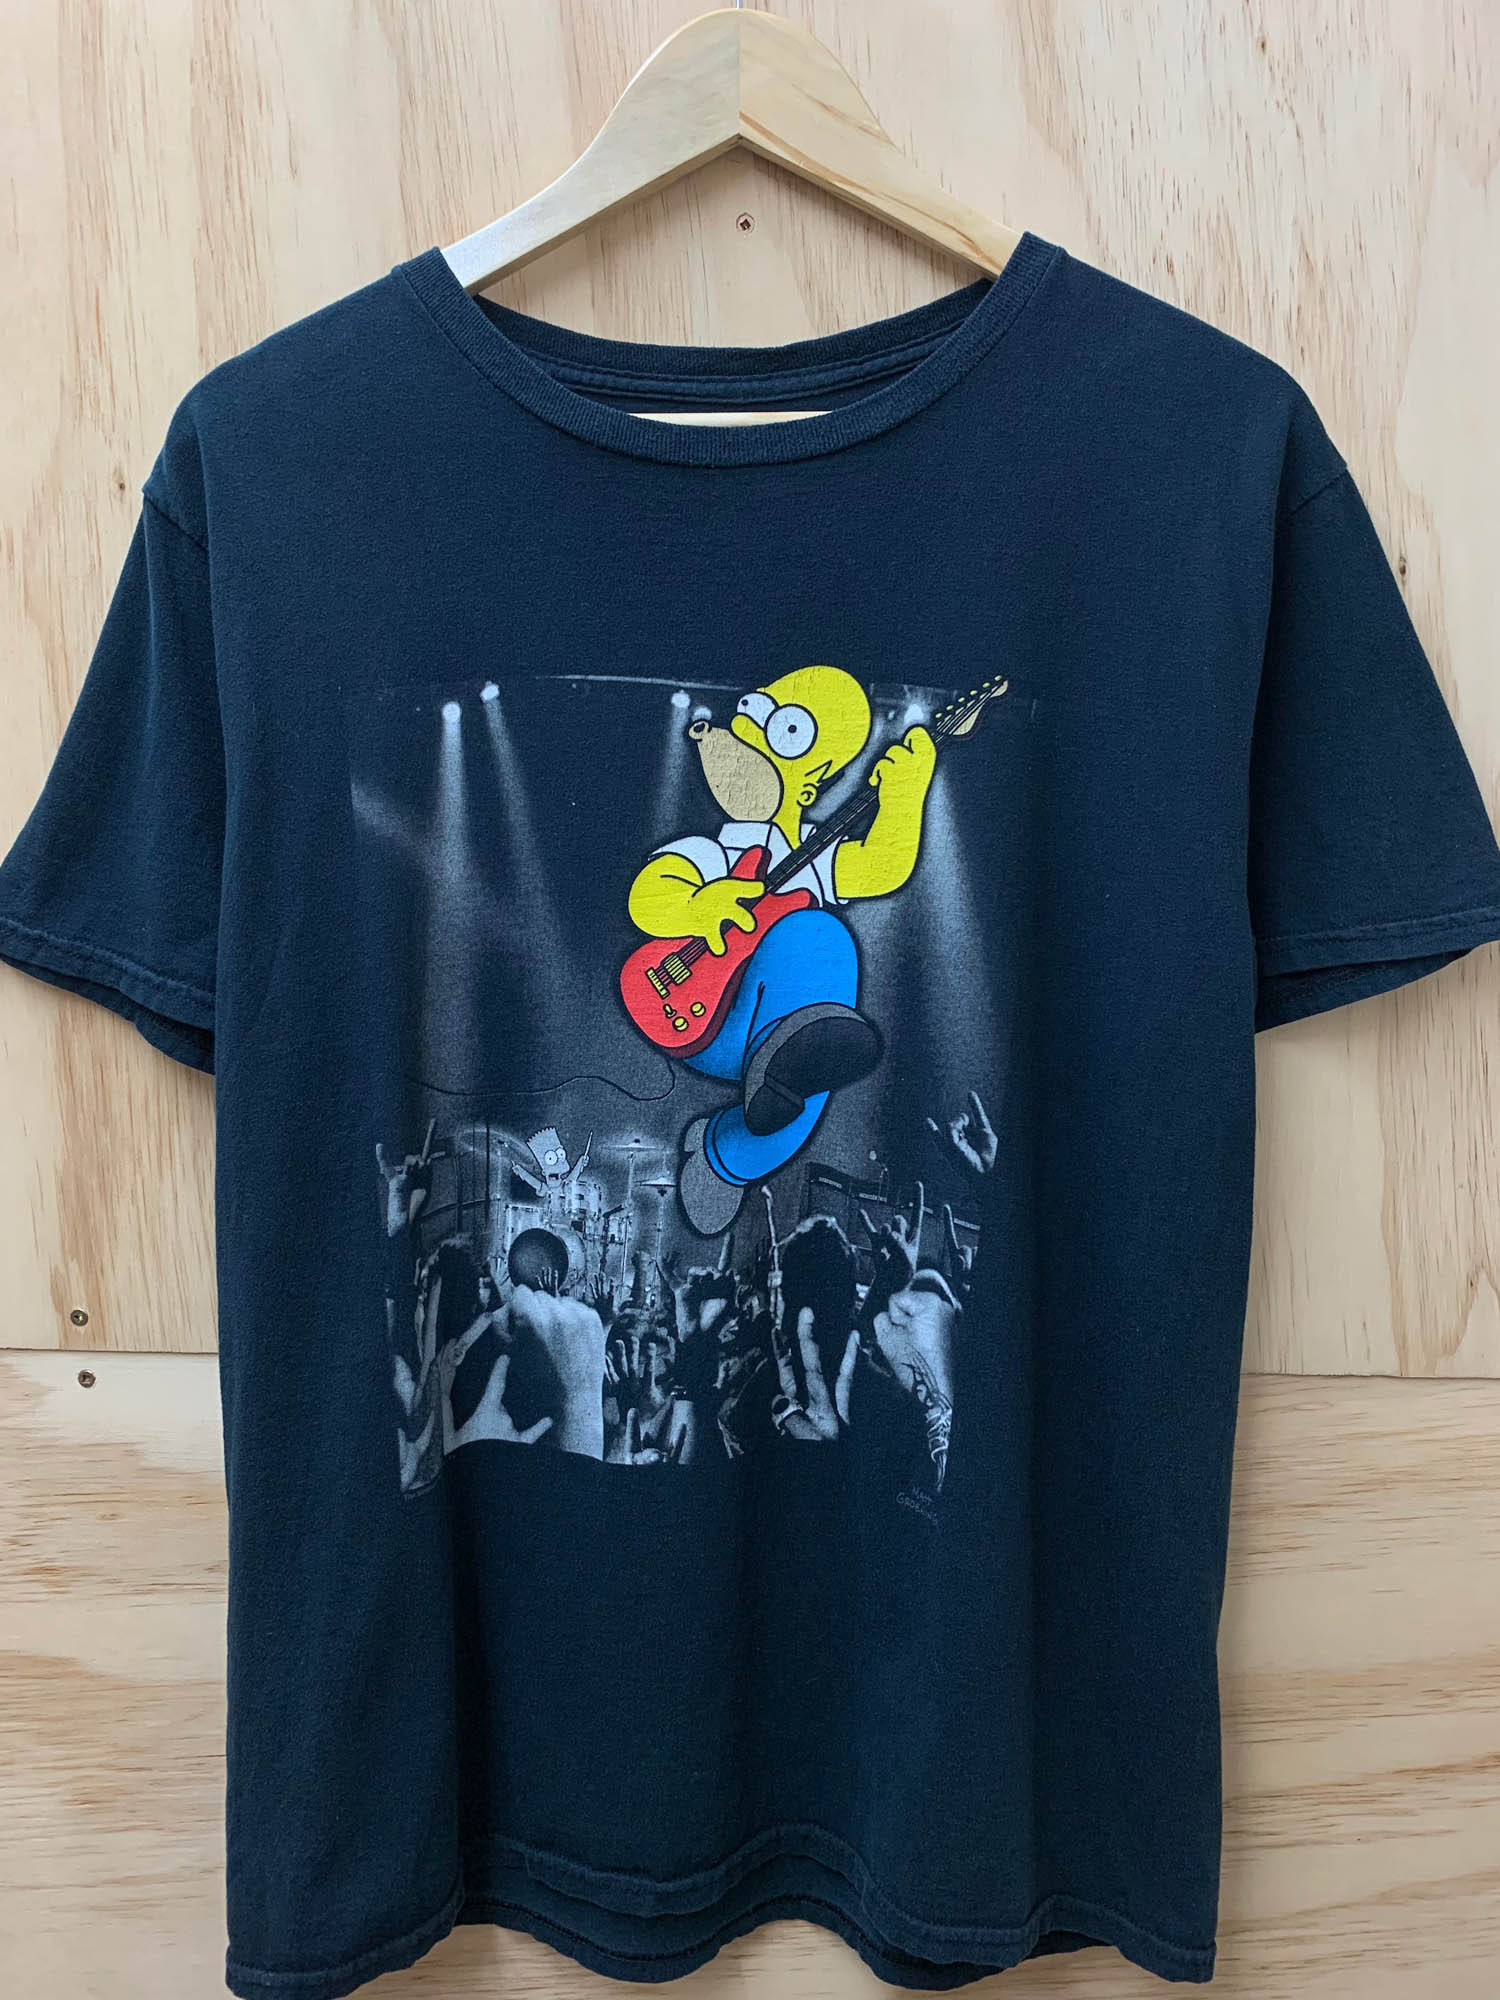 VINTAGE HOMER SIMPSON ROCK OUT TEE